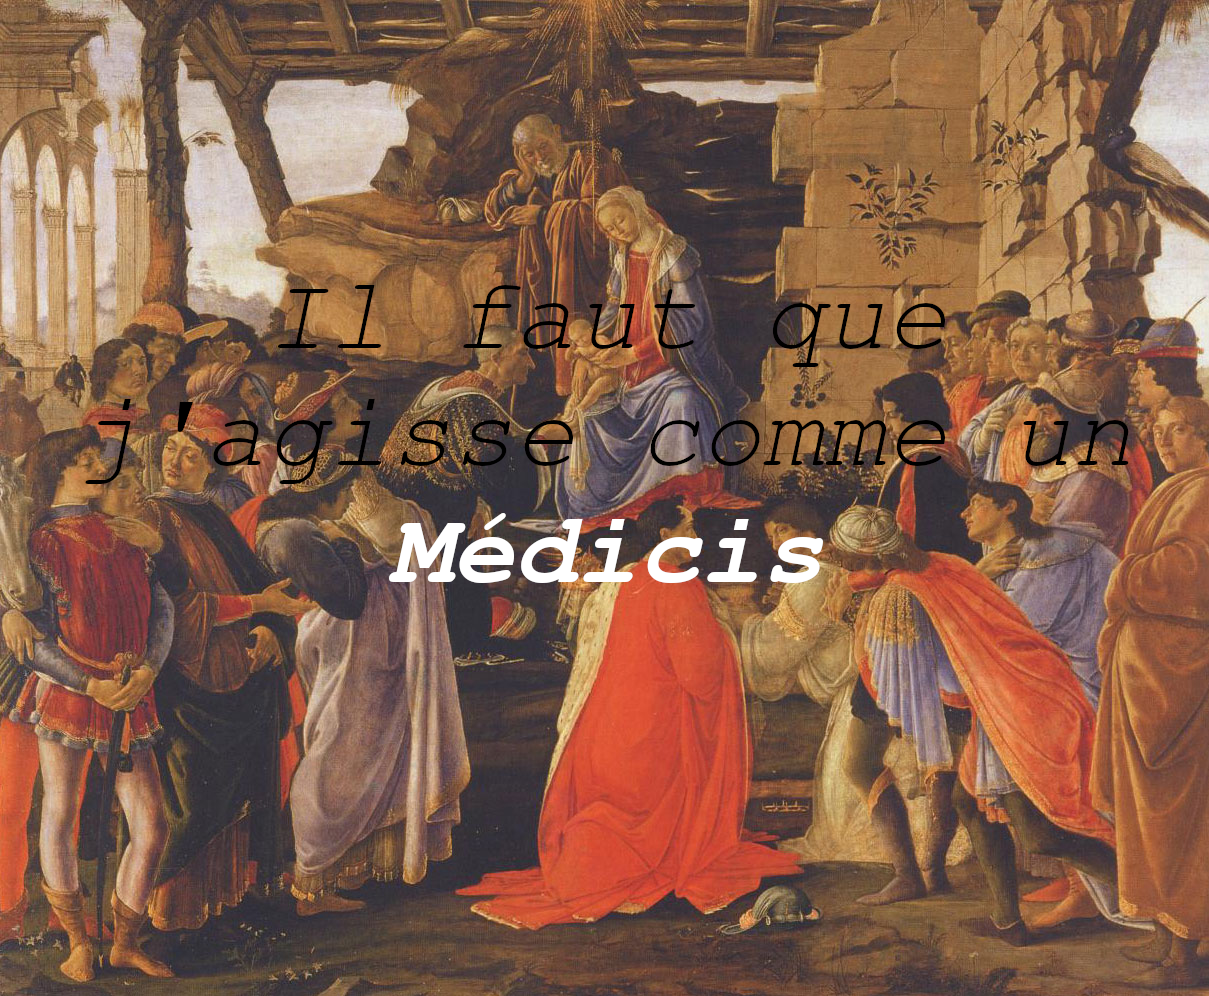 Source image: https://www.herodote.net/_includes/images.php?nom=/Images/Medicis_Botticelli_maxi.jpg&w=728&h=600